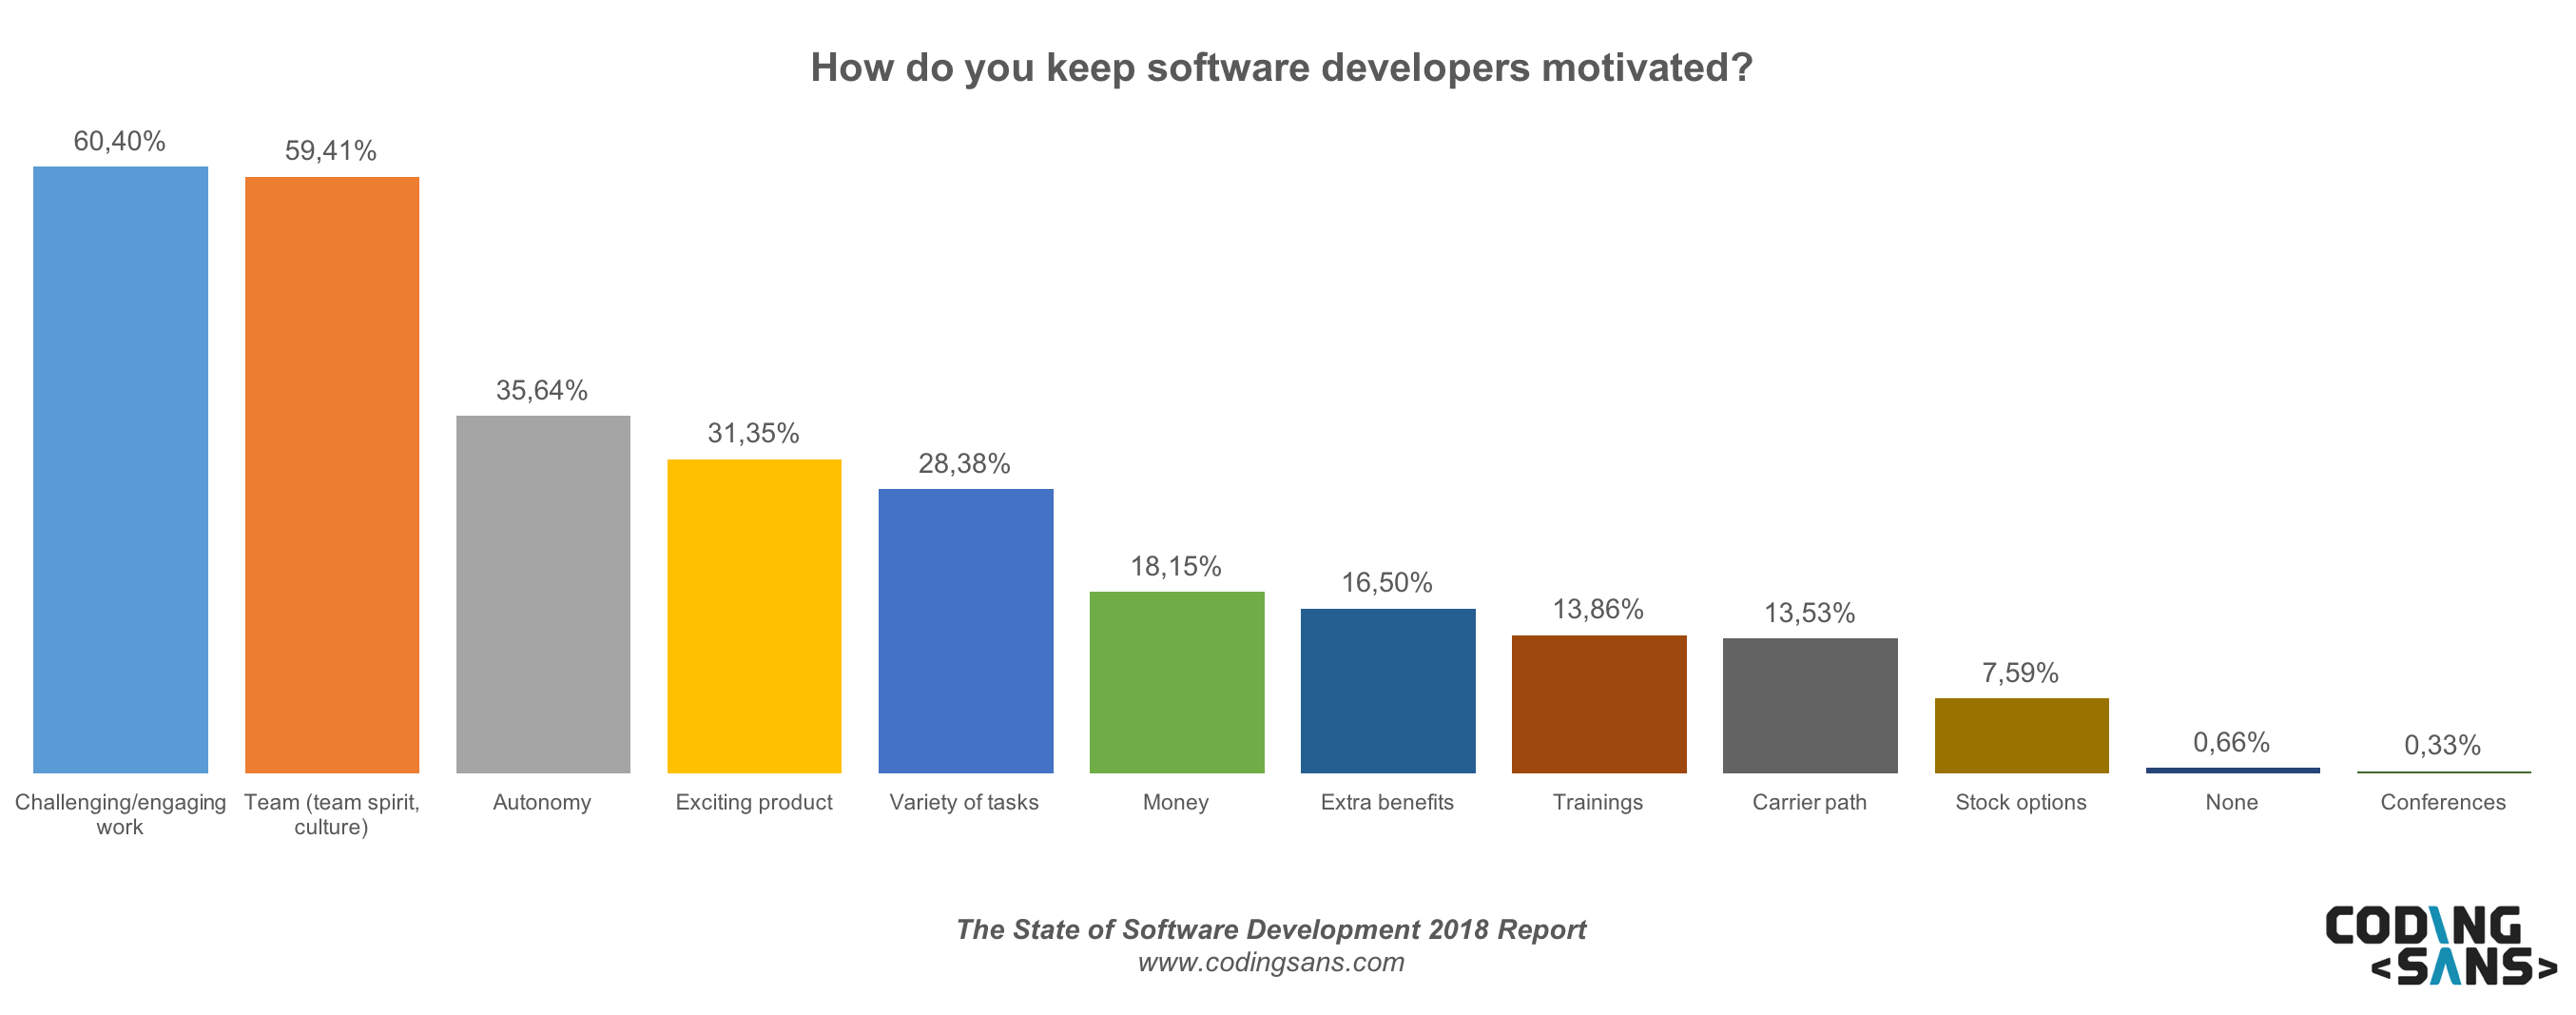 Motivating Software Developers2